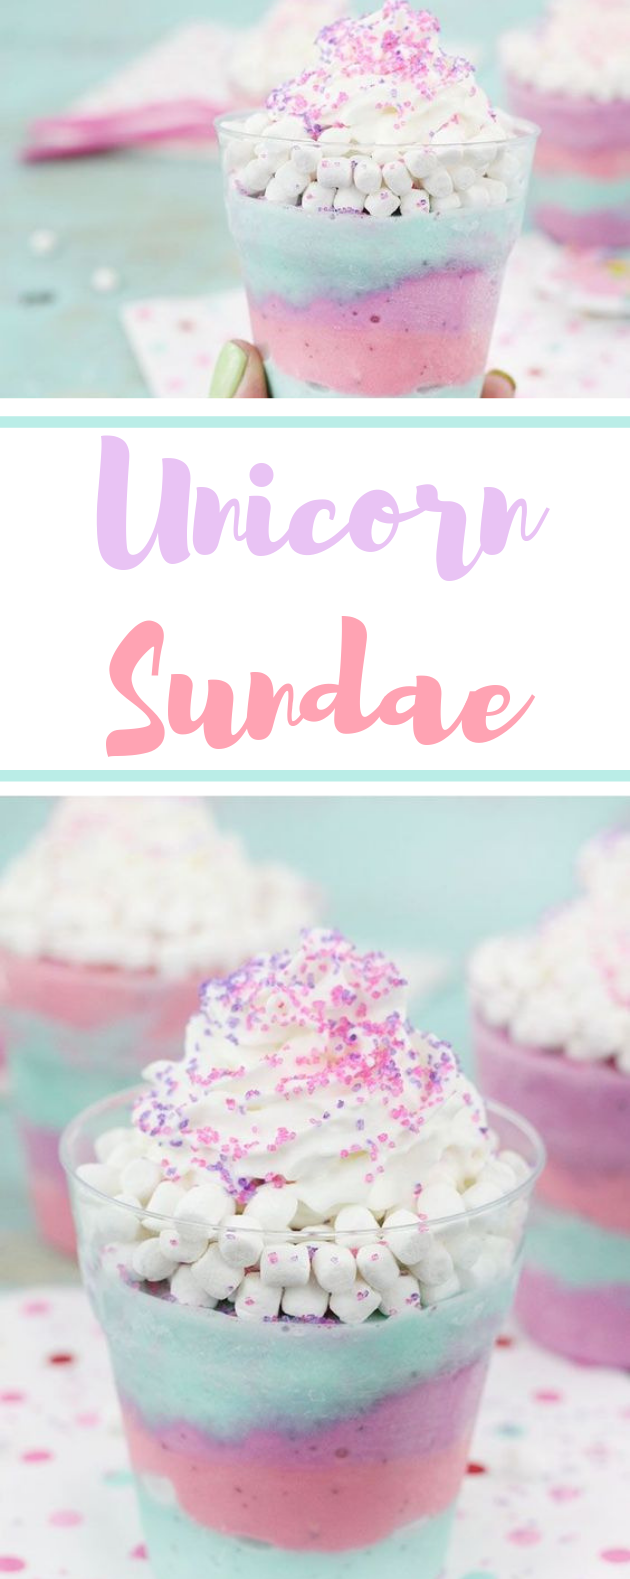 Unicorn Sundaes #icecream #desserts